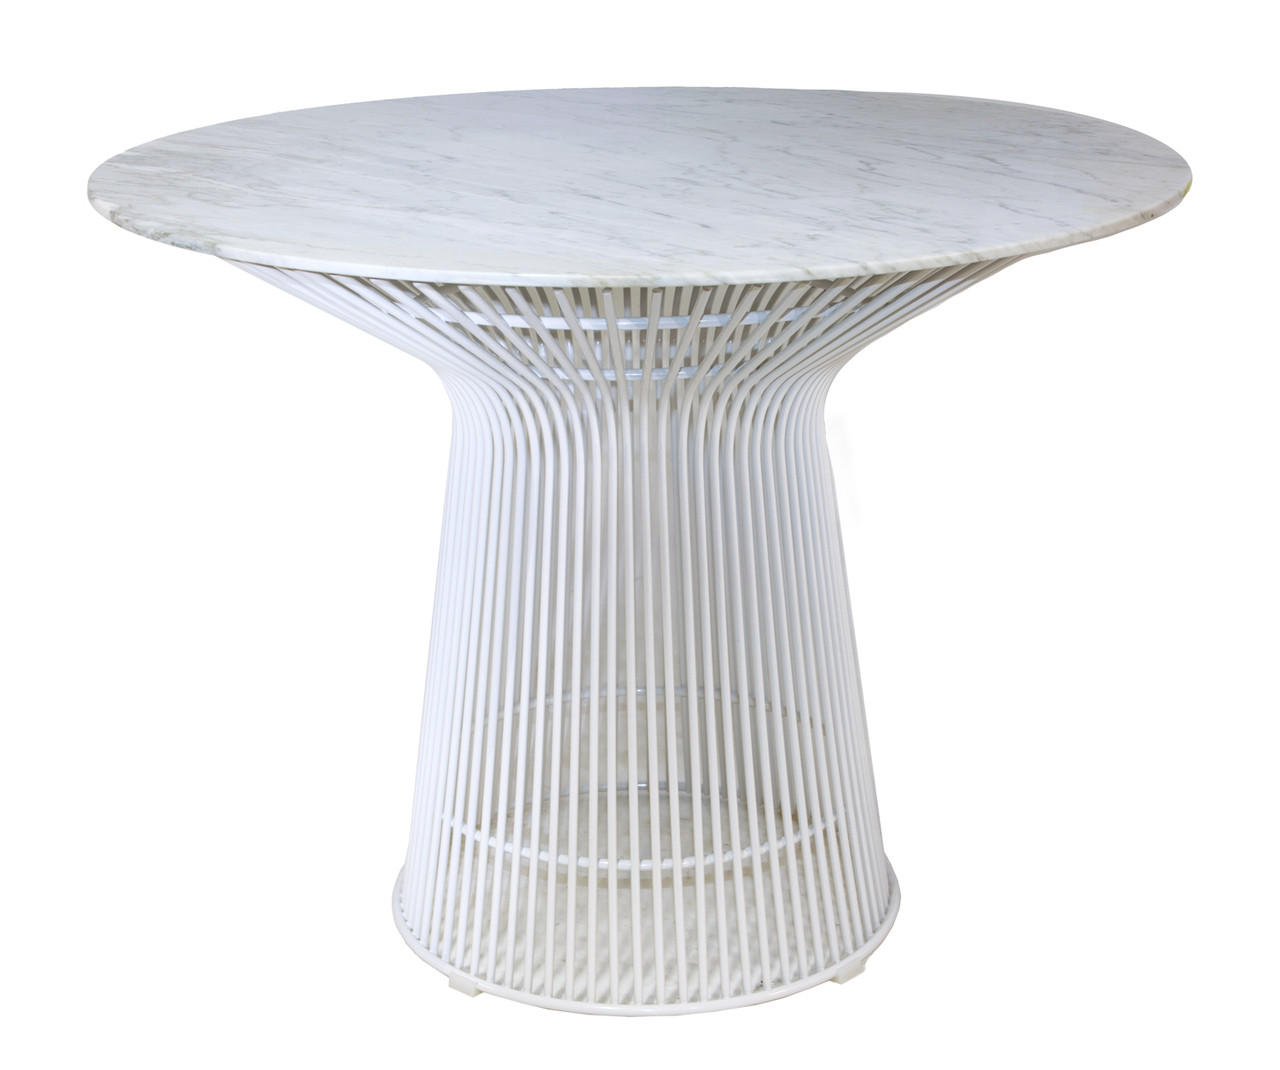 Replica Warren Platner - Wire Dining Table - Marble Top - White Powdercoated - 100cm